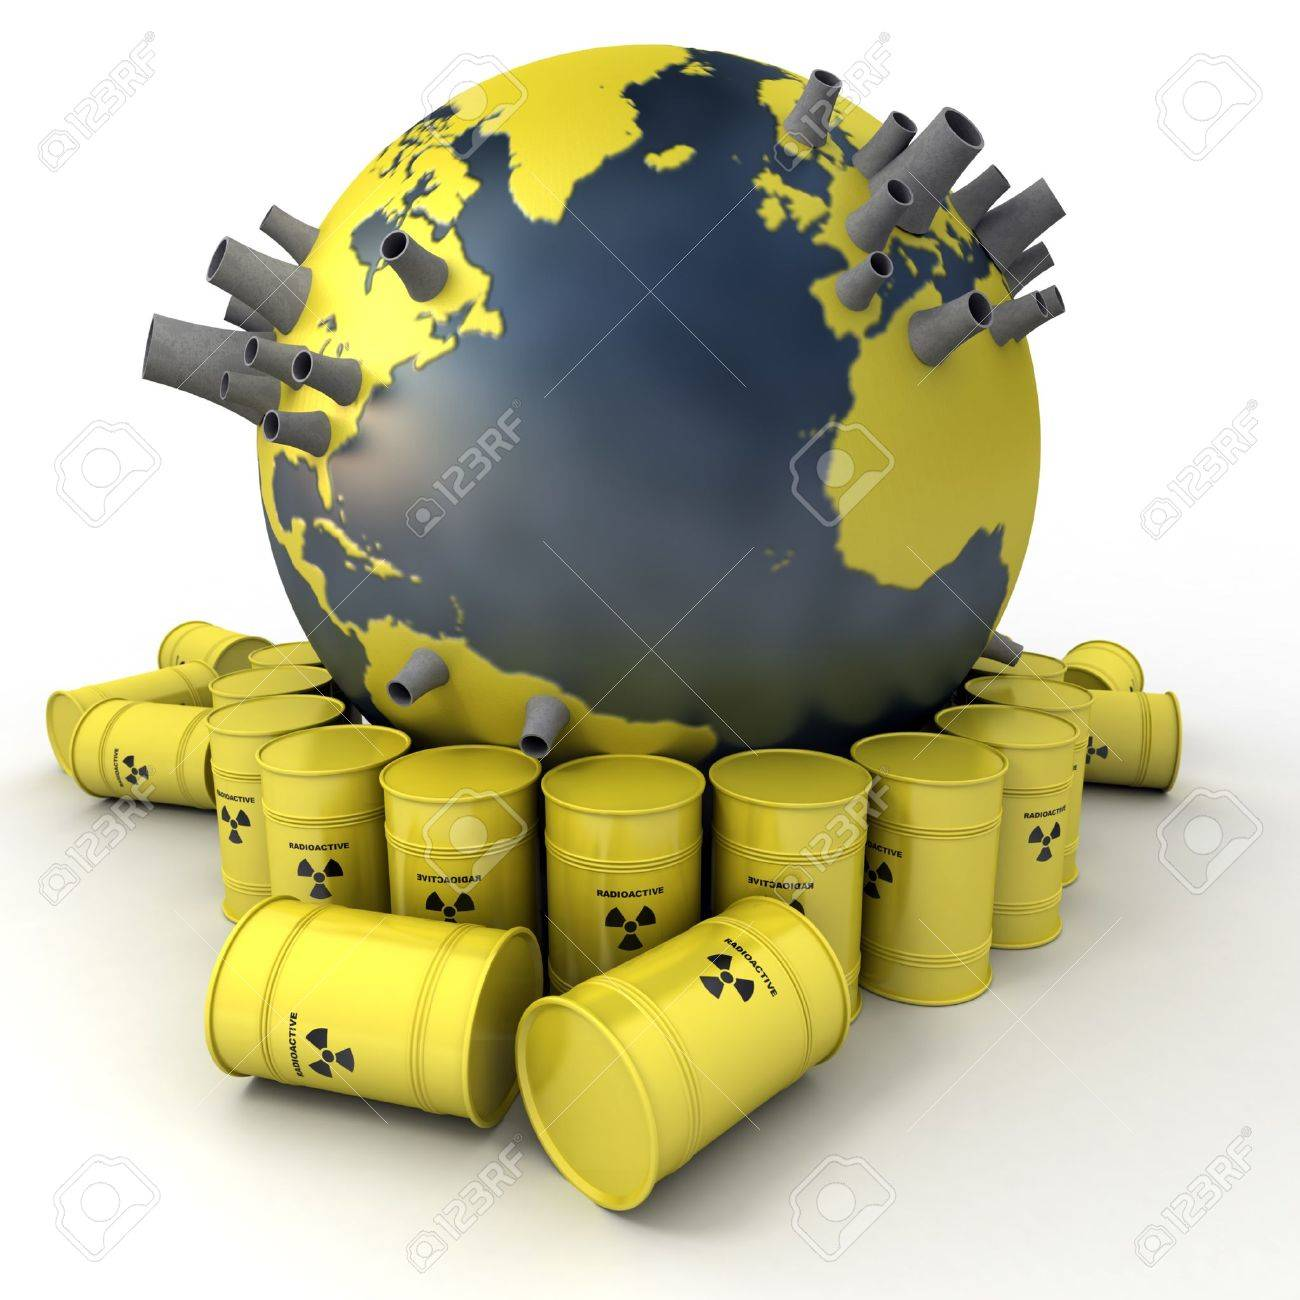 3D rendering of the Earth with nuclear power stations surrounded by barrels of nuclear waste Stock Photo - 11942349